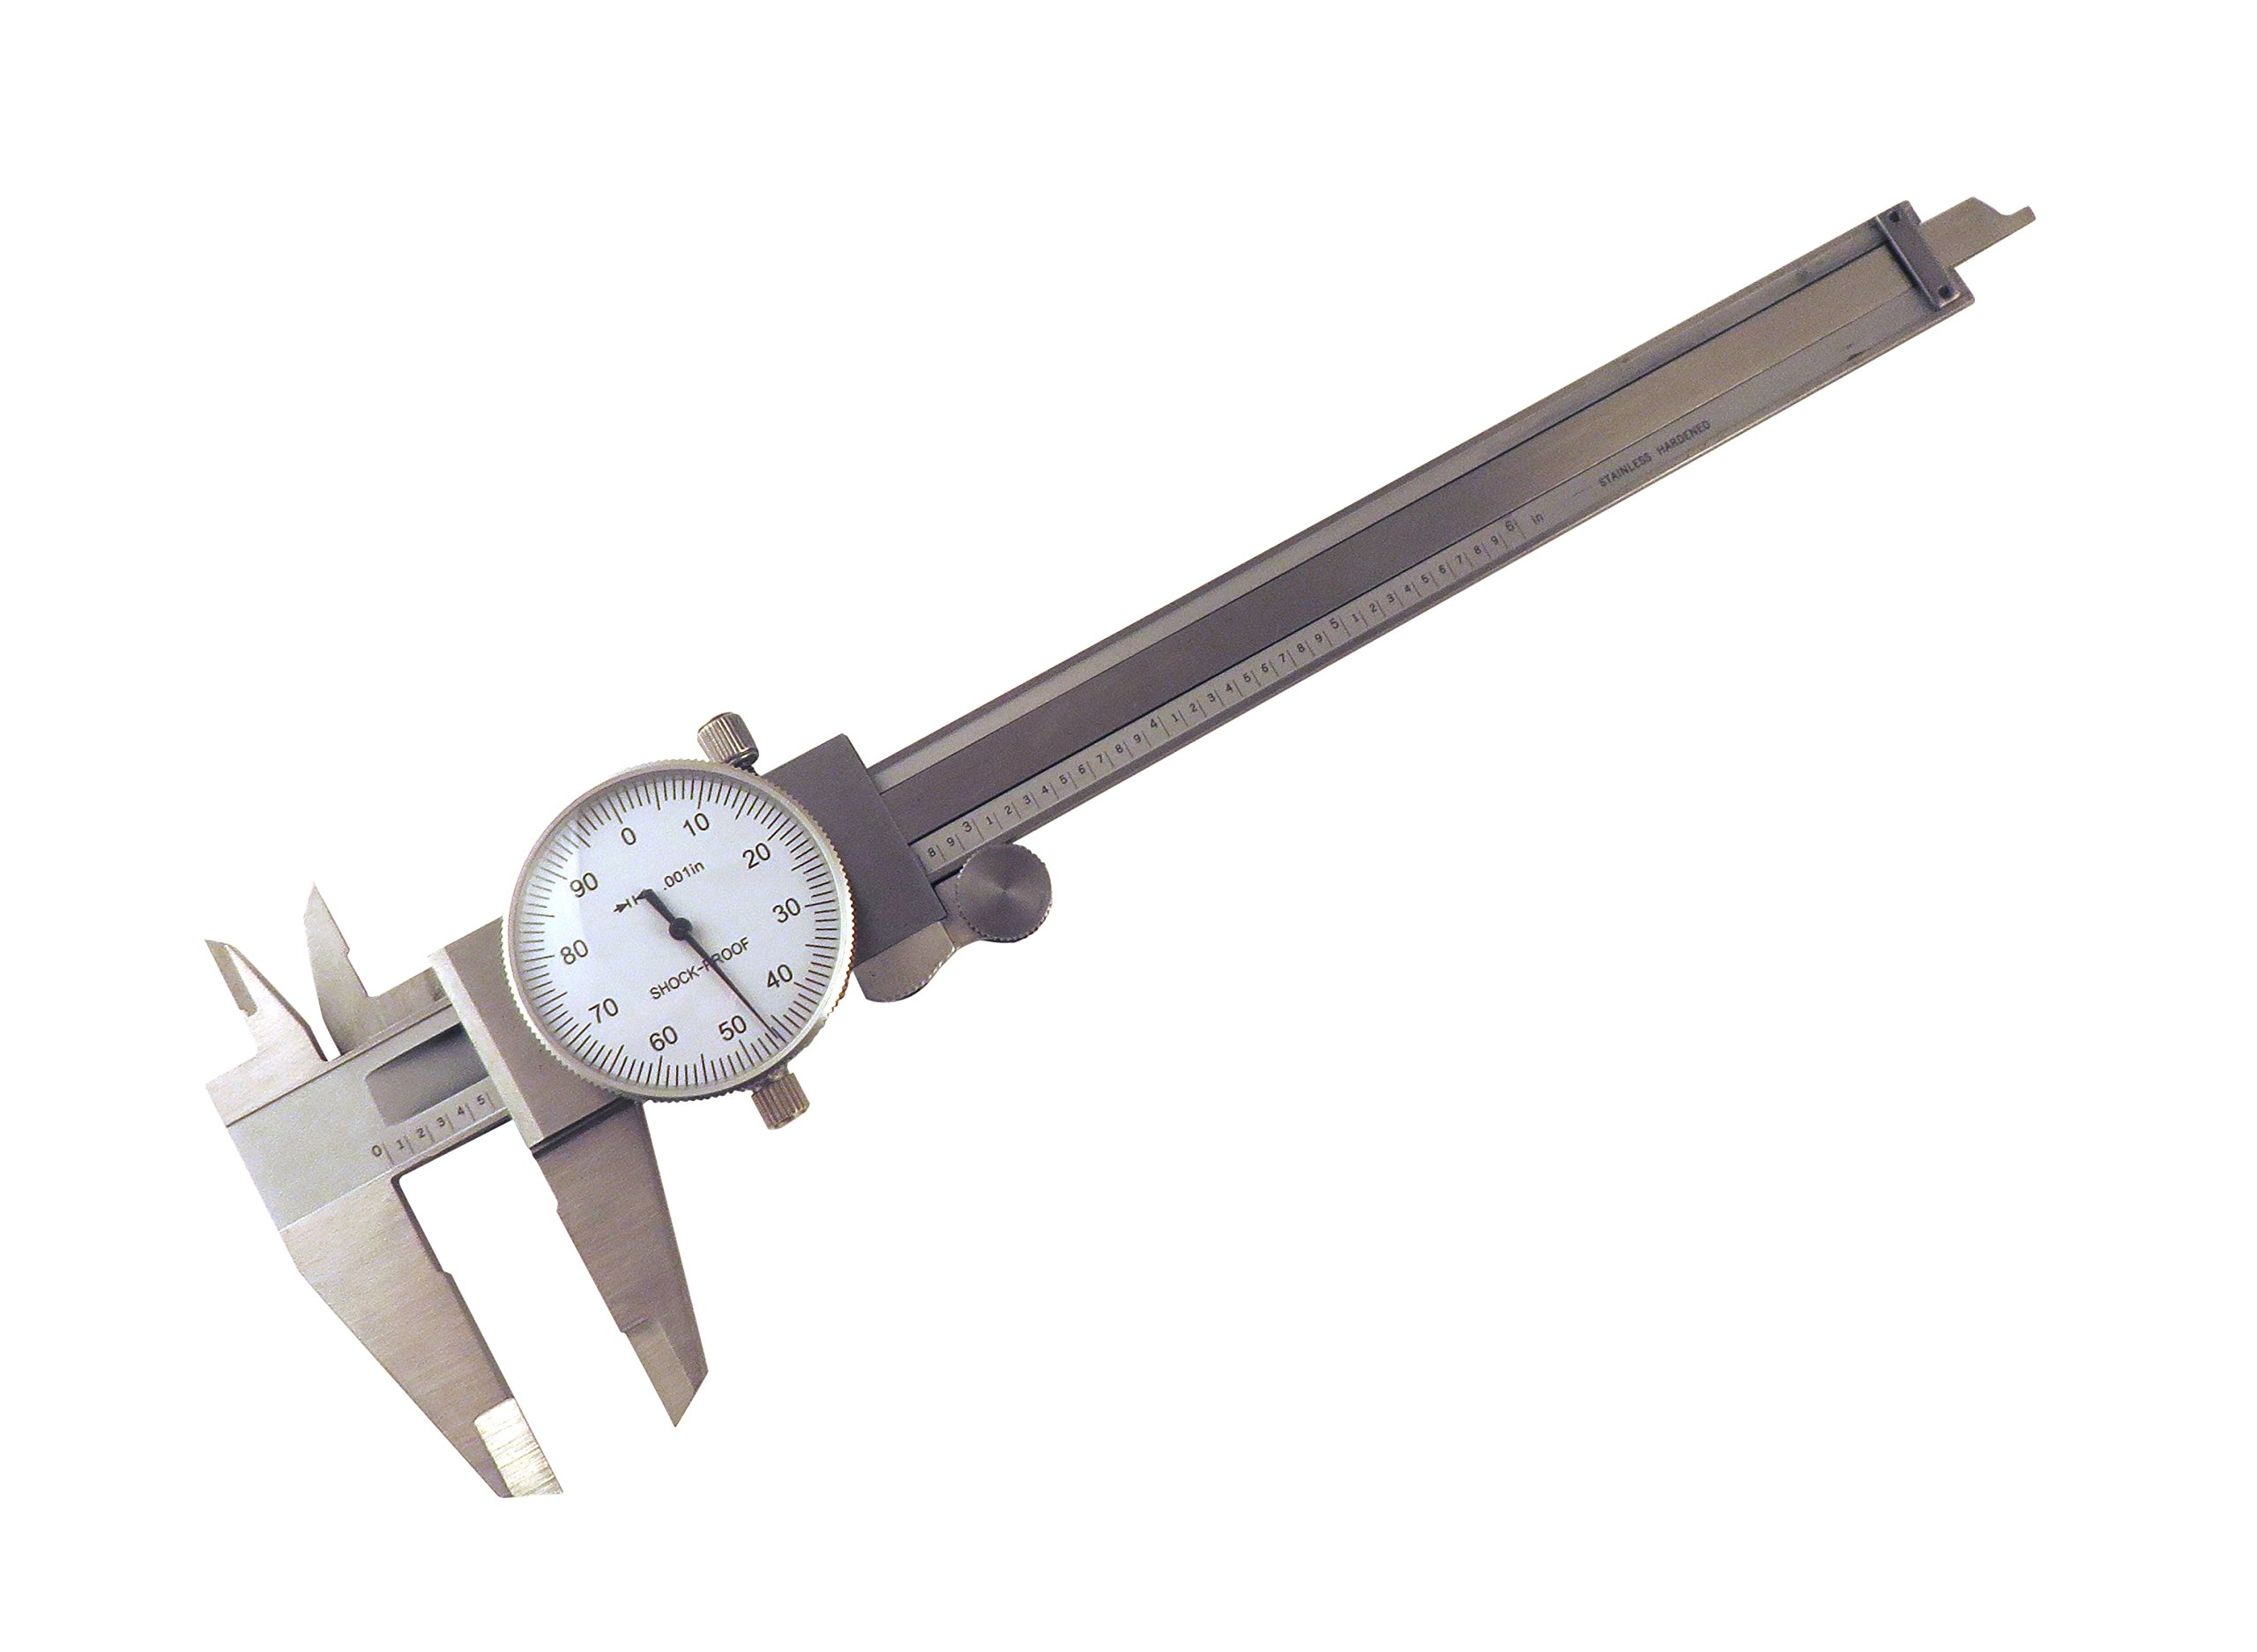 6 '' SAE Dial Calipers Accurate to 0.001'' per 6'' Hardened Stainless Steel for Inside, Outside, Step and Depth Measurements SAEDC-6 by Taylor Toolworks